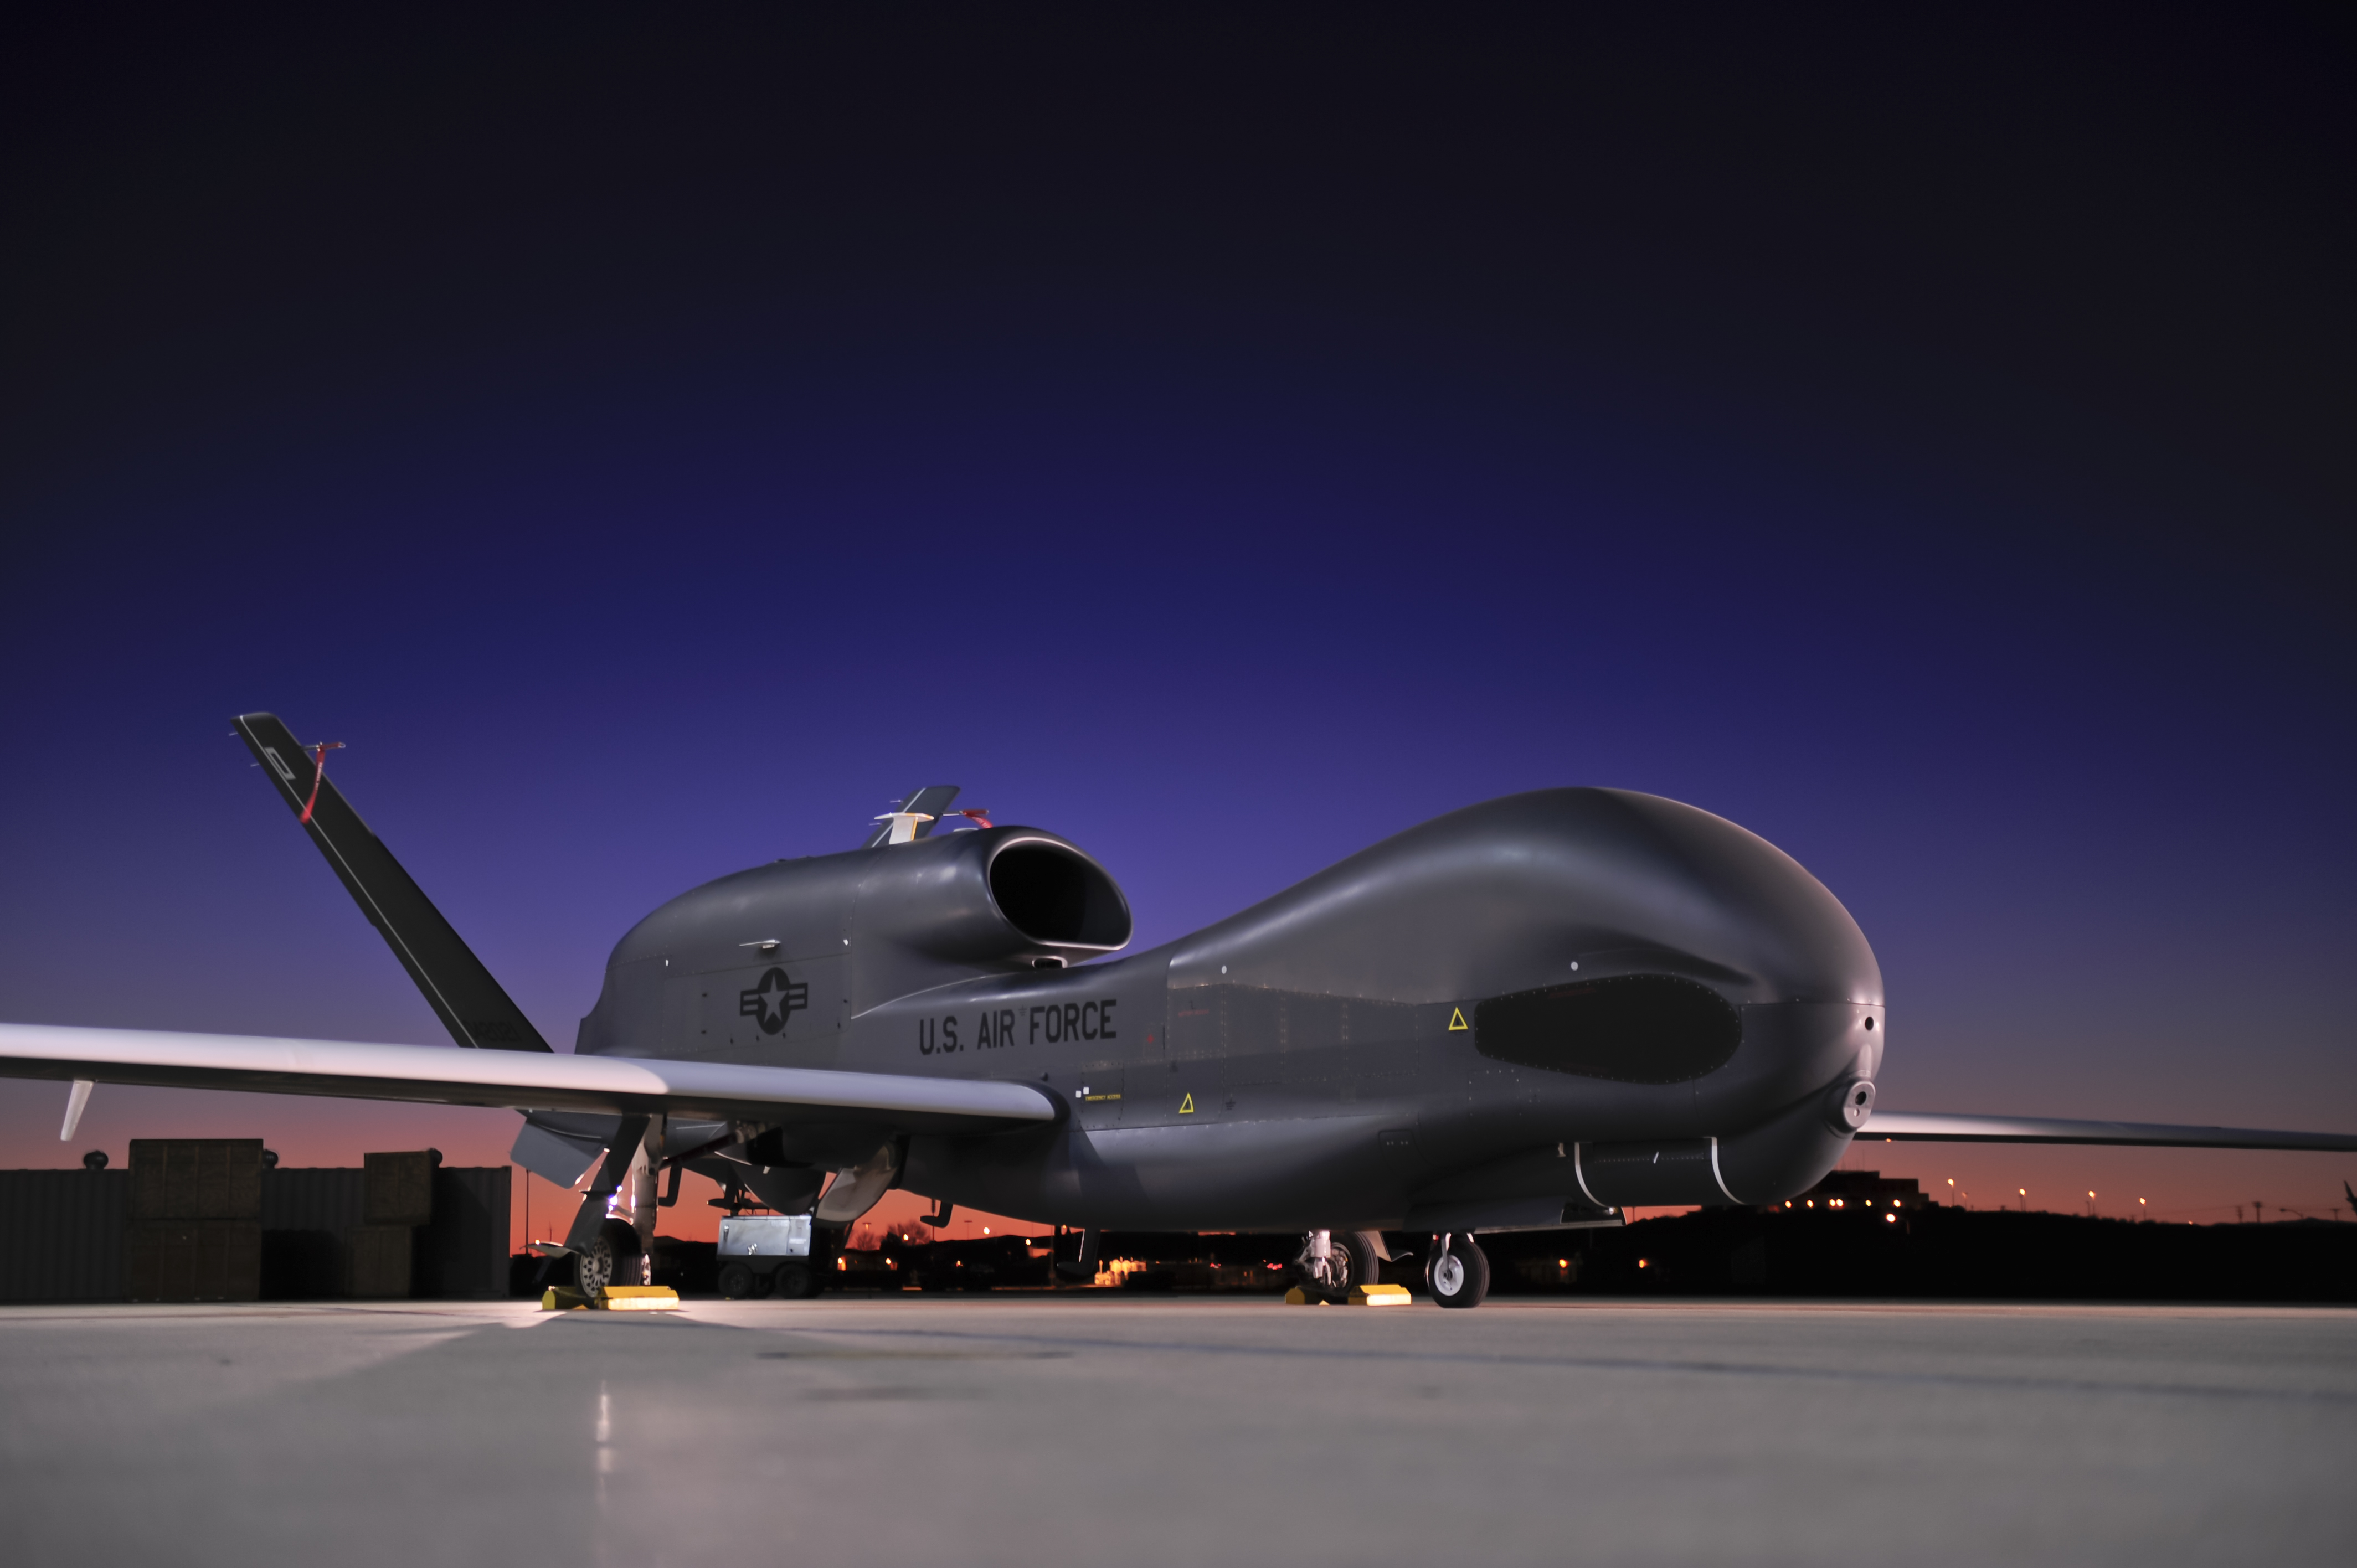 U.S. Air Force RQ-4 Block 30 Global Hawk